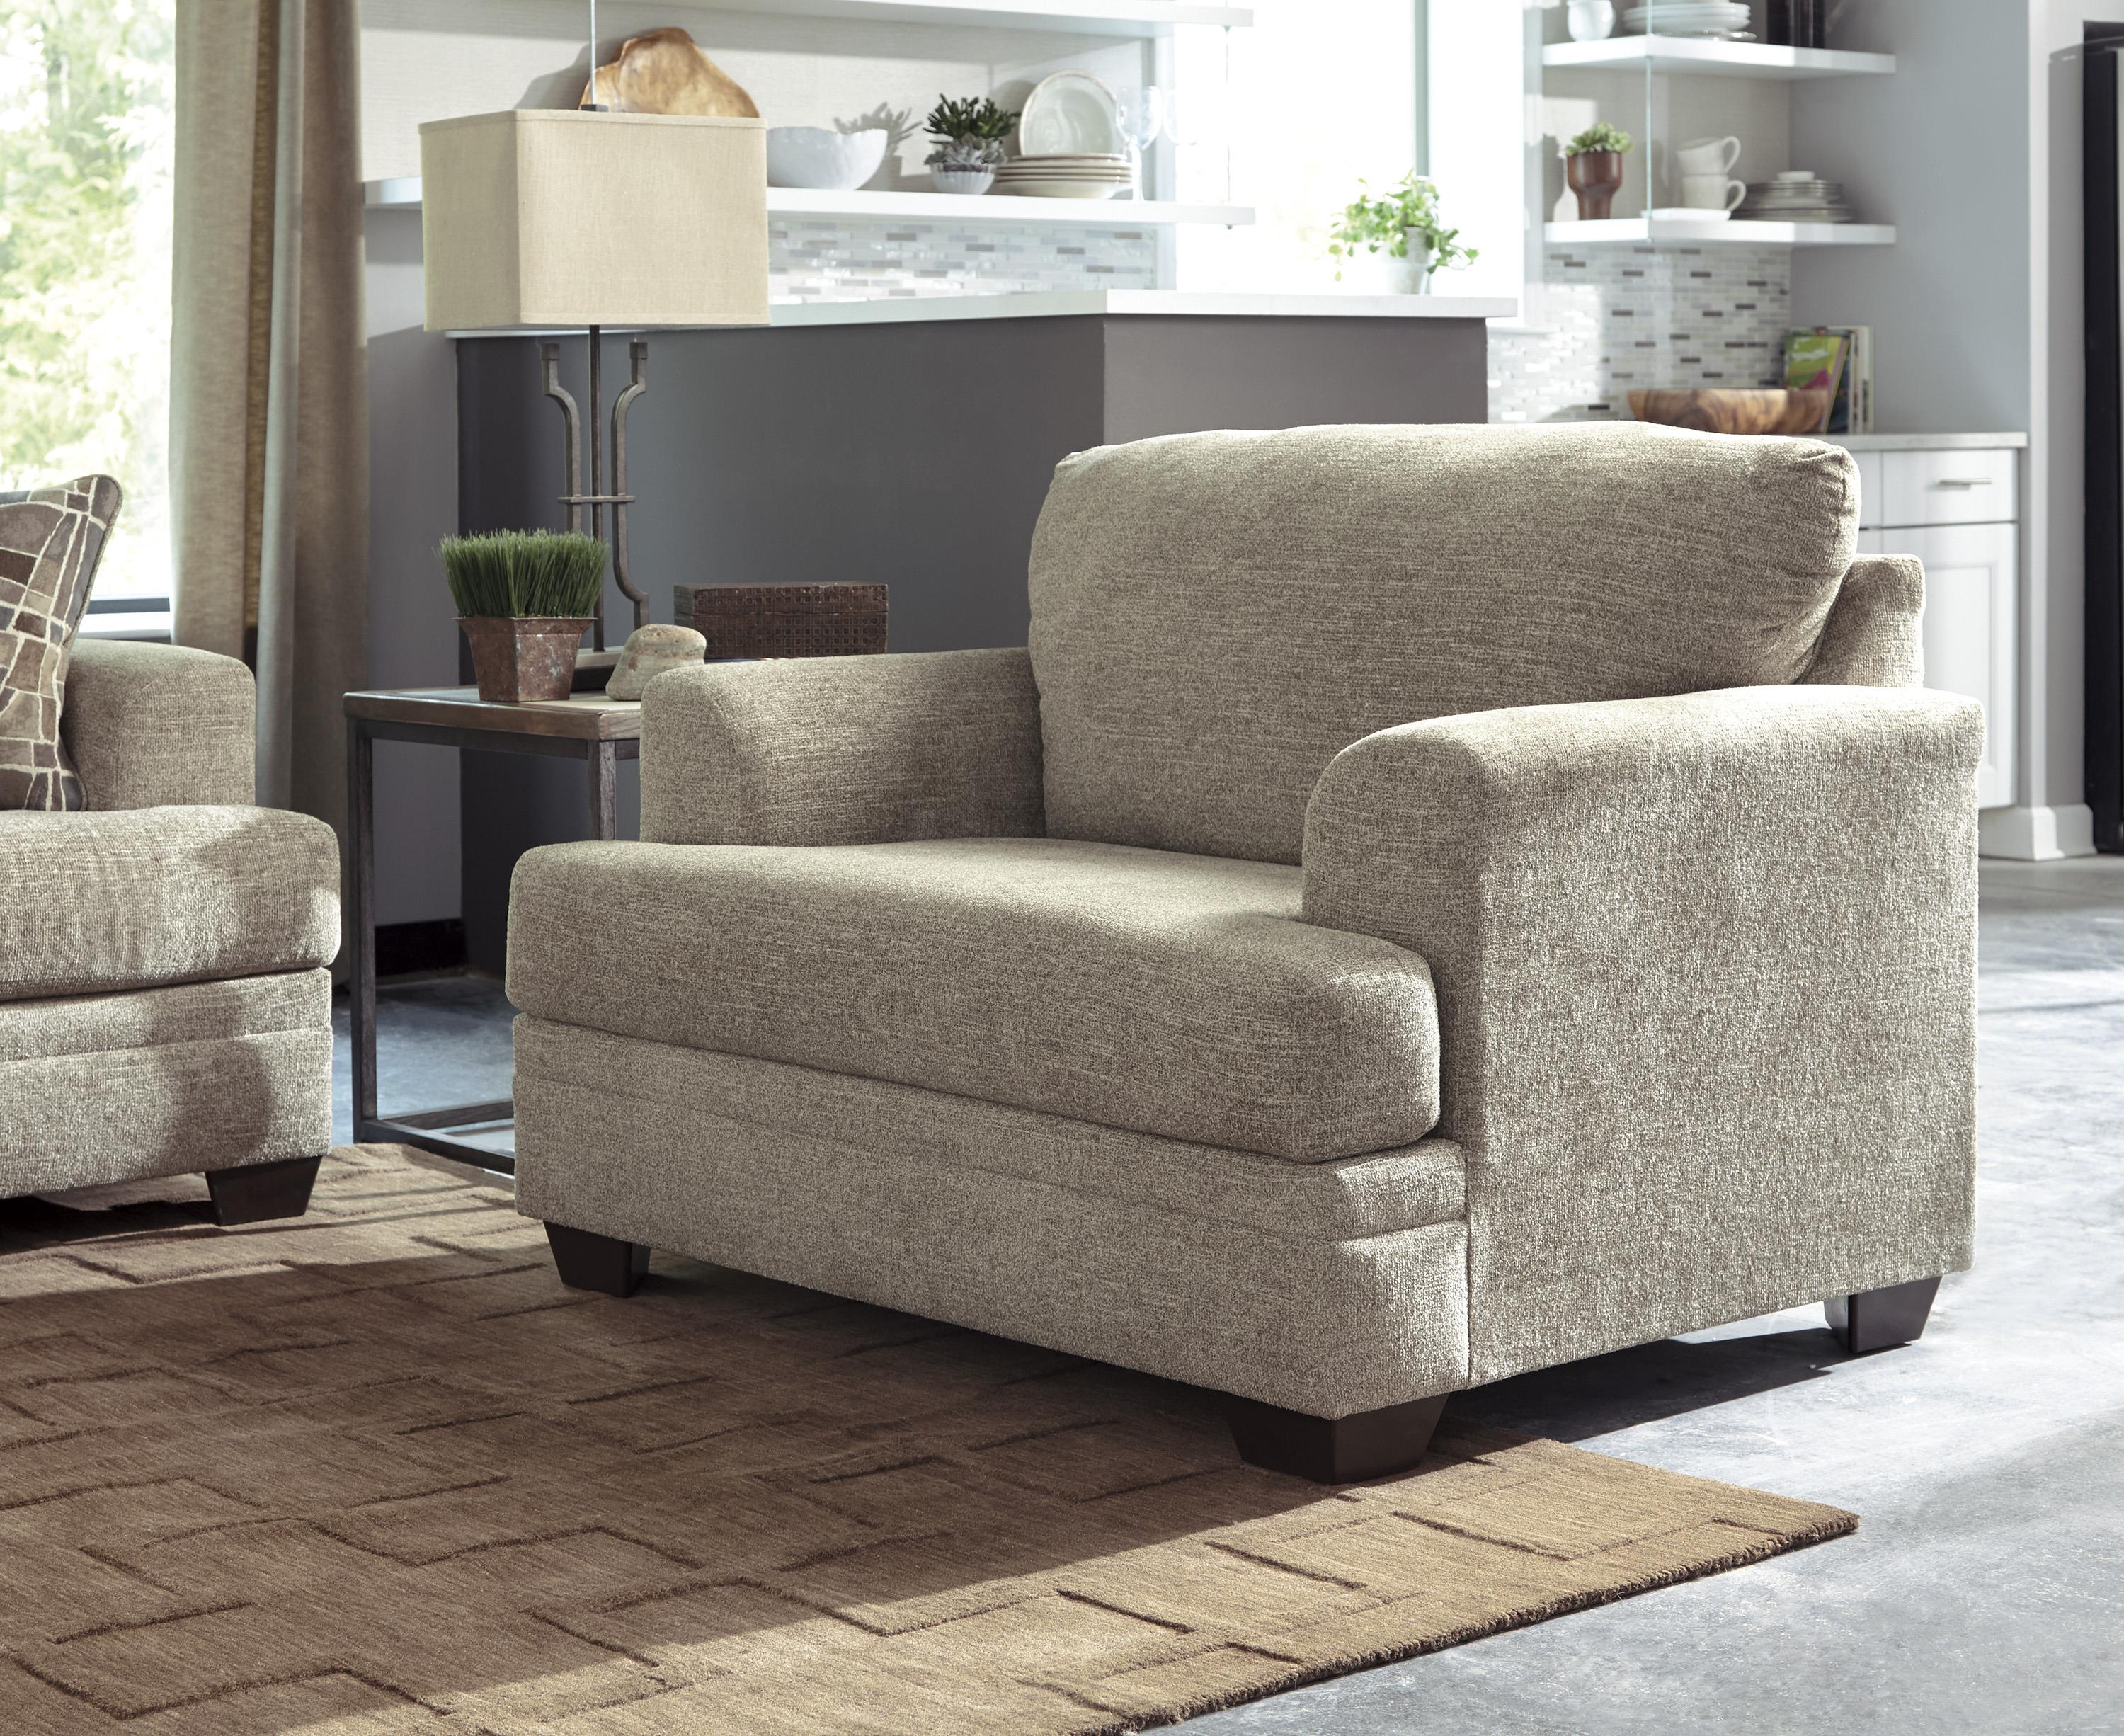 Benchcraft Barrish 4850123 Contemporary Chair And A Half